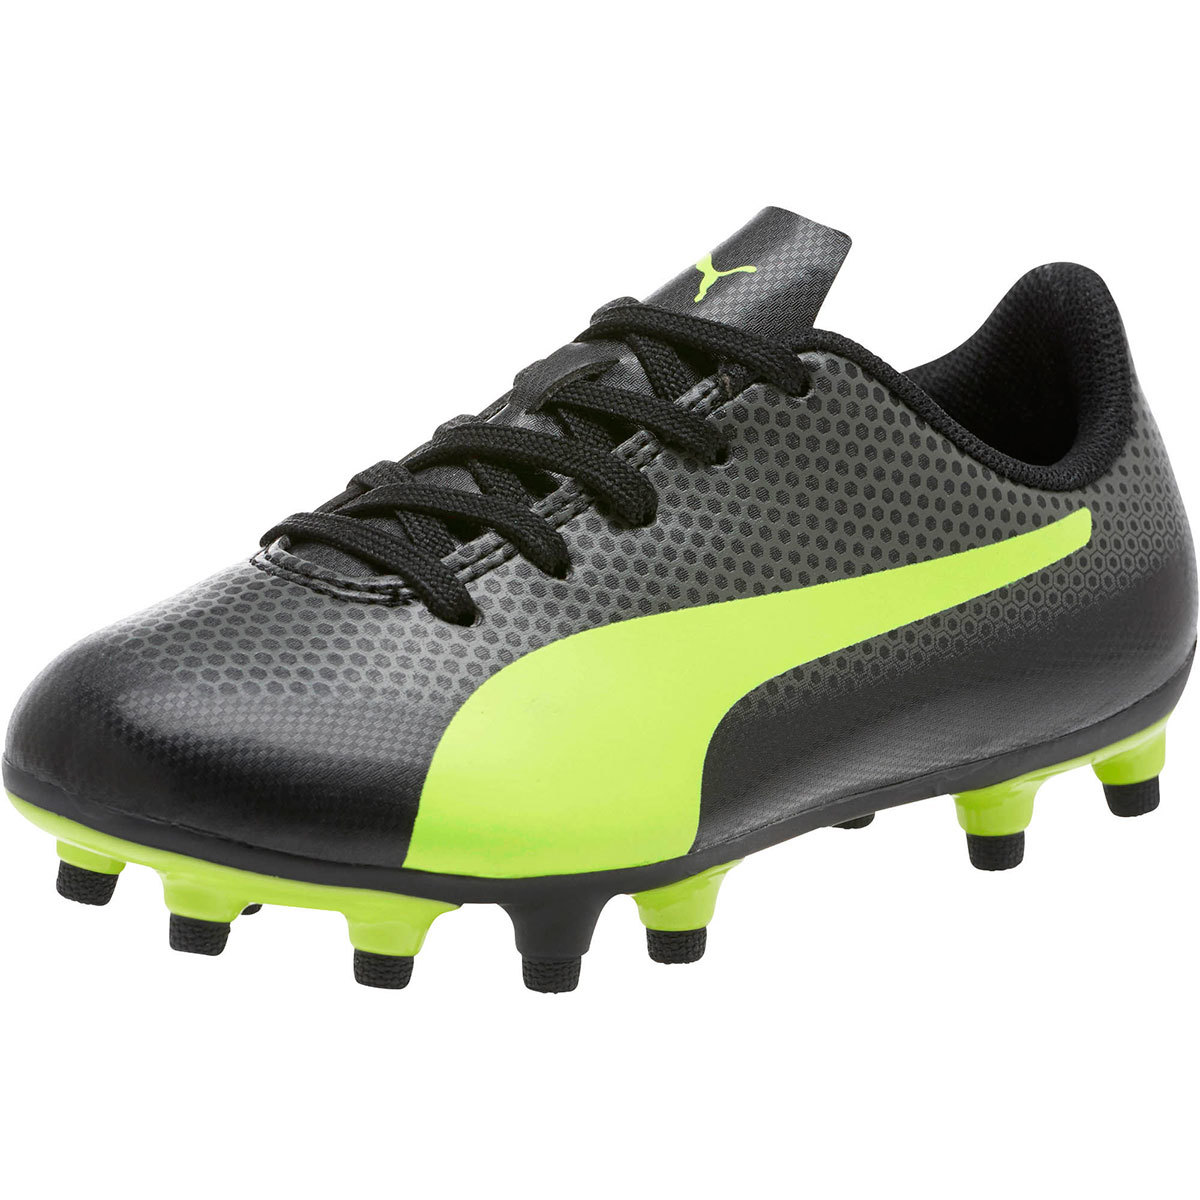 Puma Kids' Spirit Fg Jr. Soccer Cleats - Black, 4.5